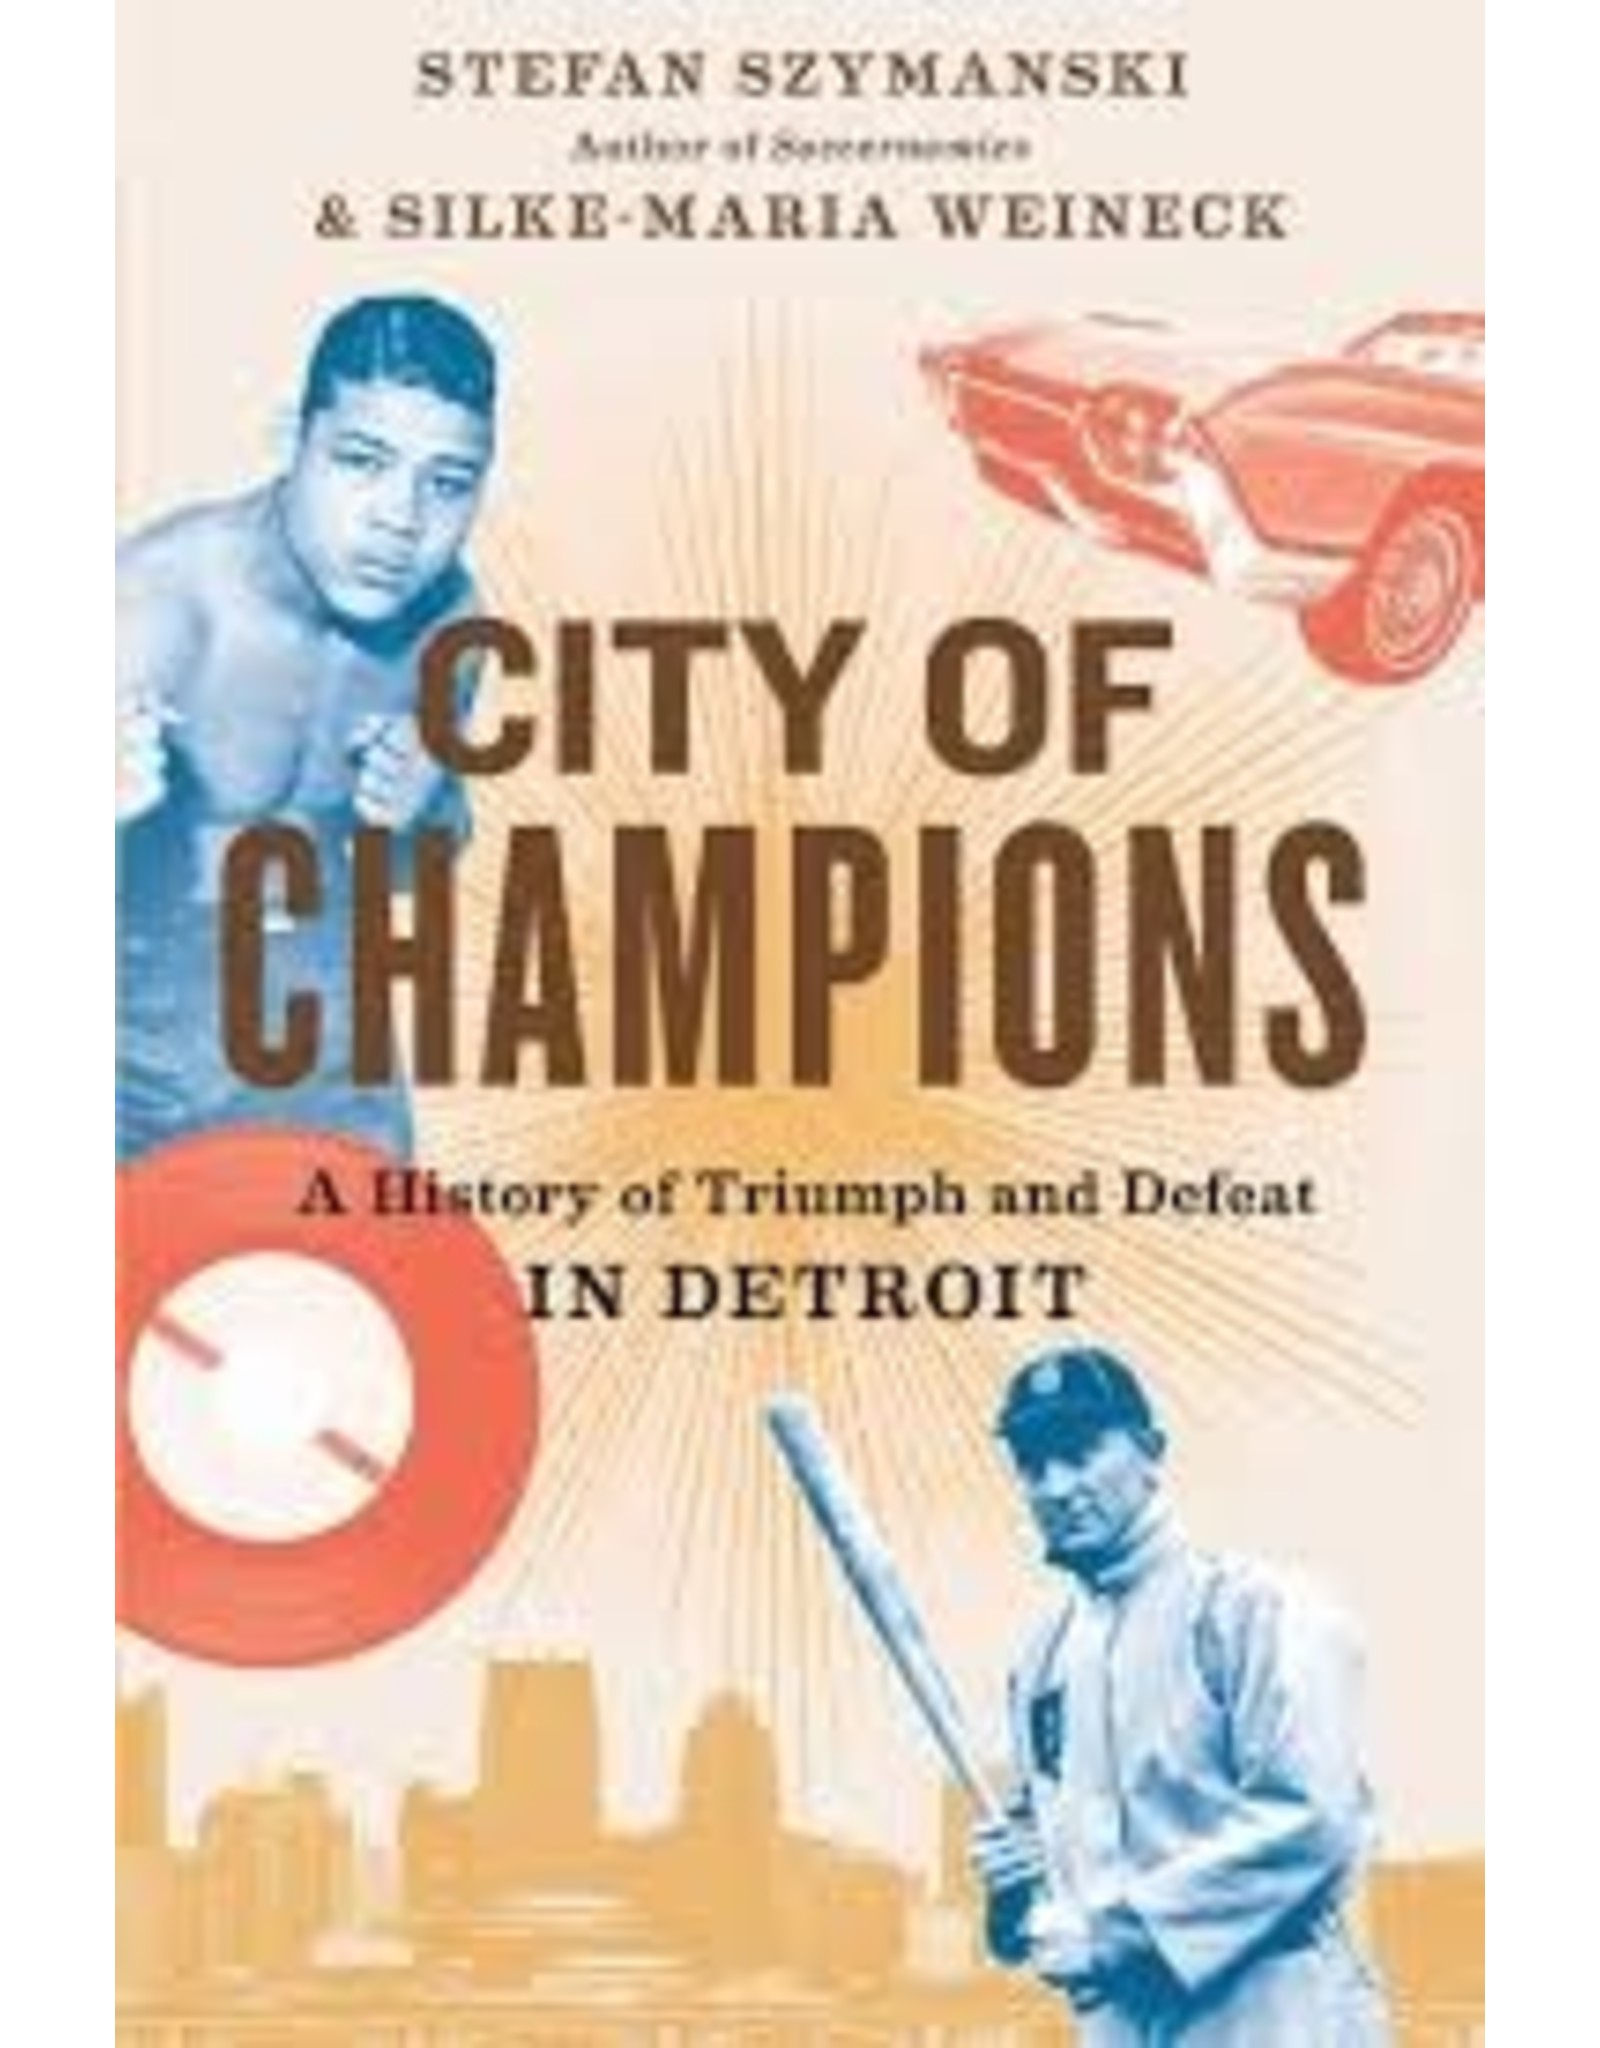 Books City of Champions: A History of Triumph and Defeat in Detroit  by Stefan Szymanski (Black Friday2020)